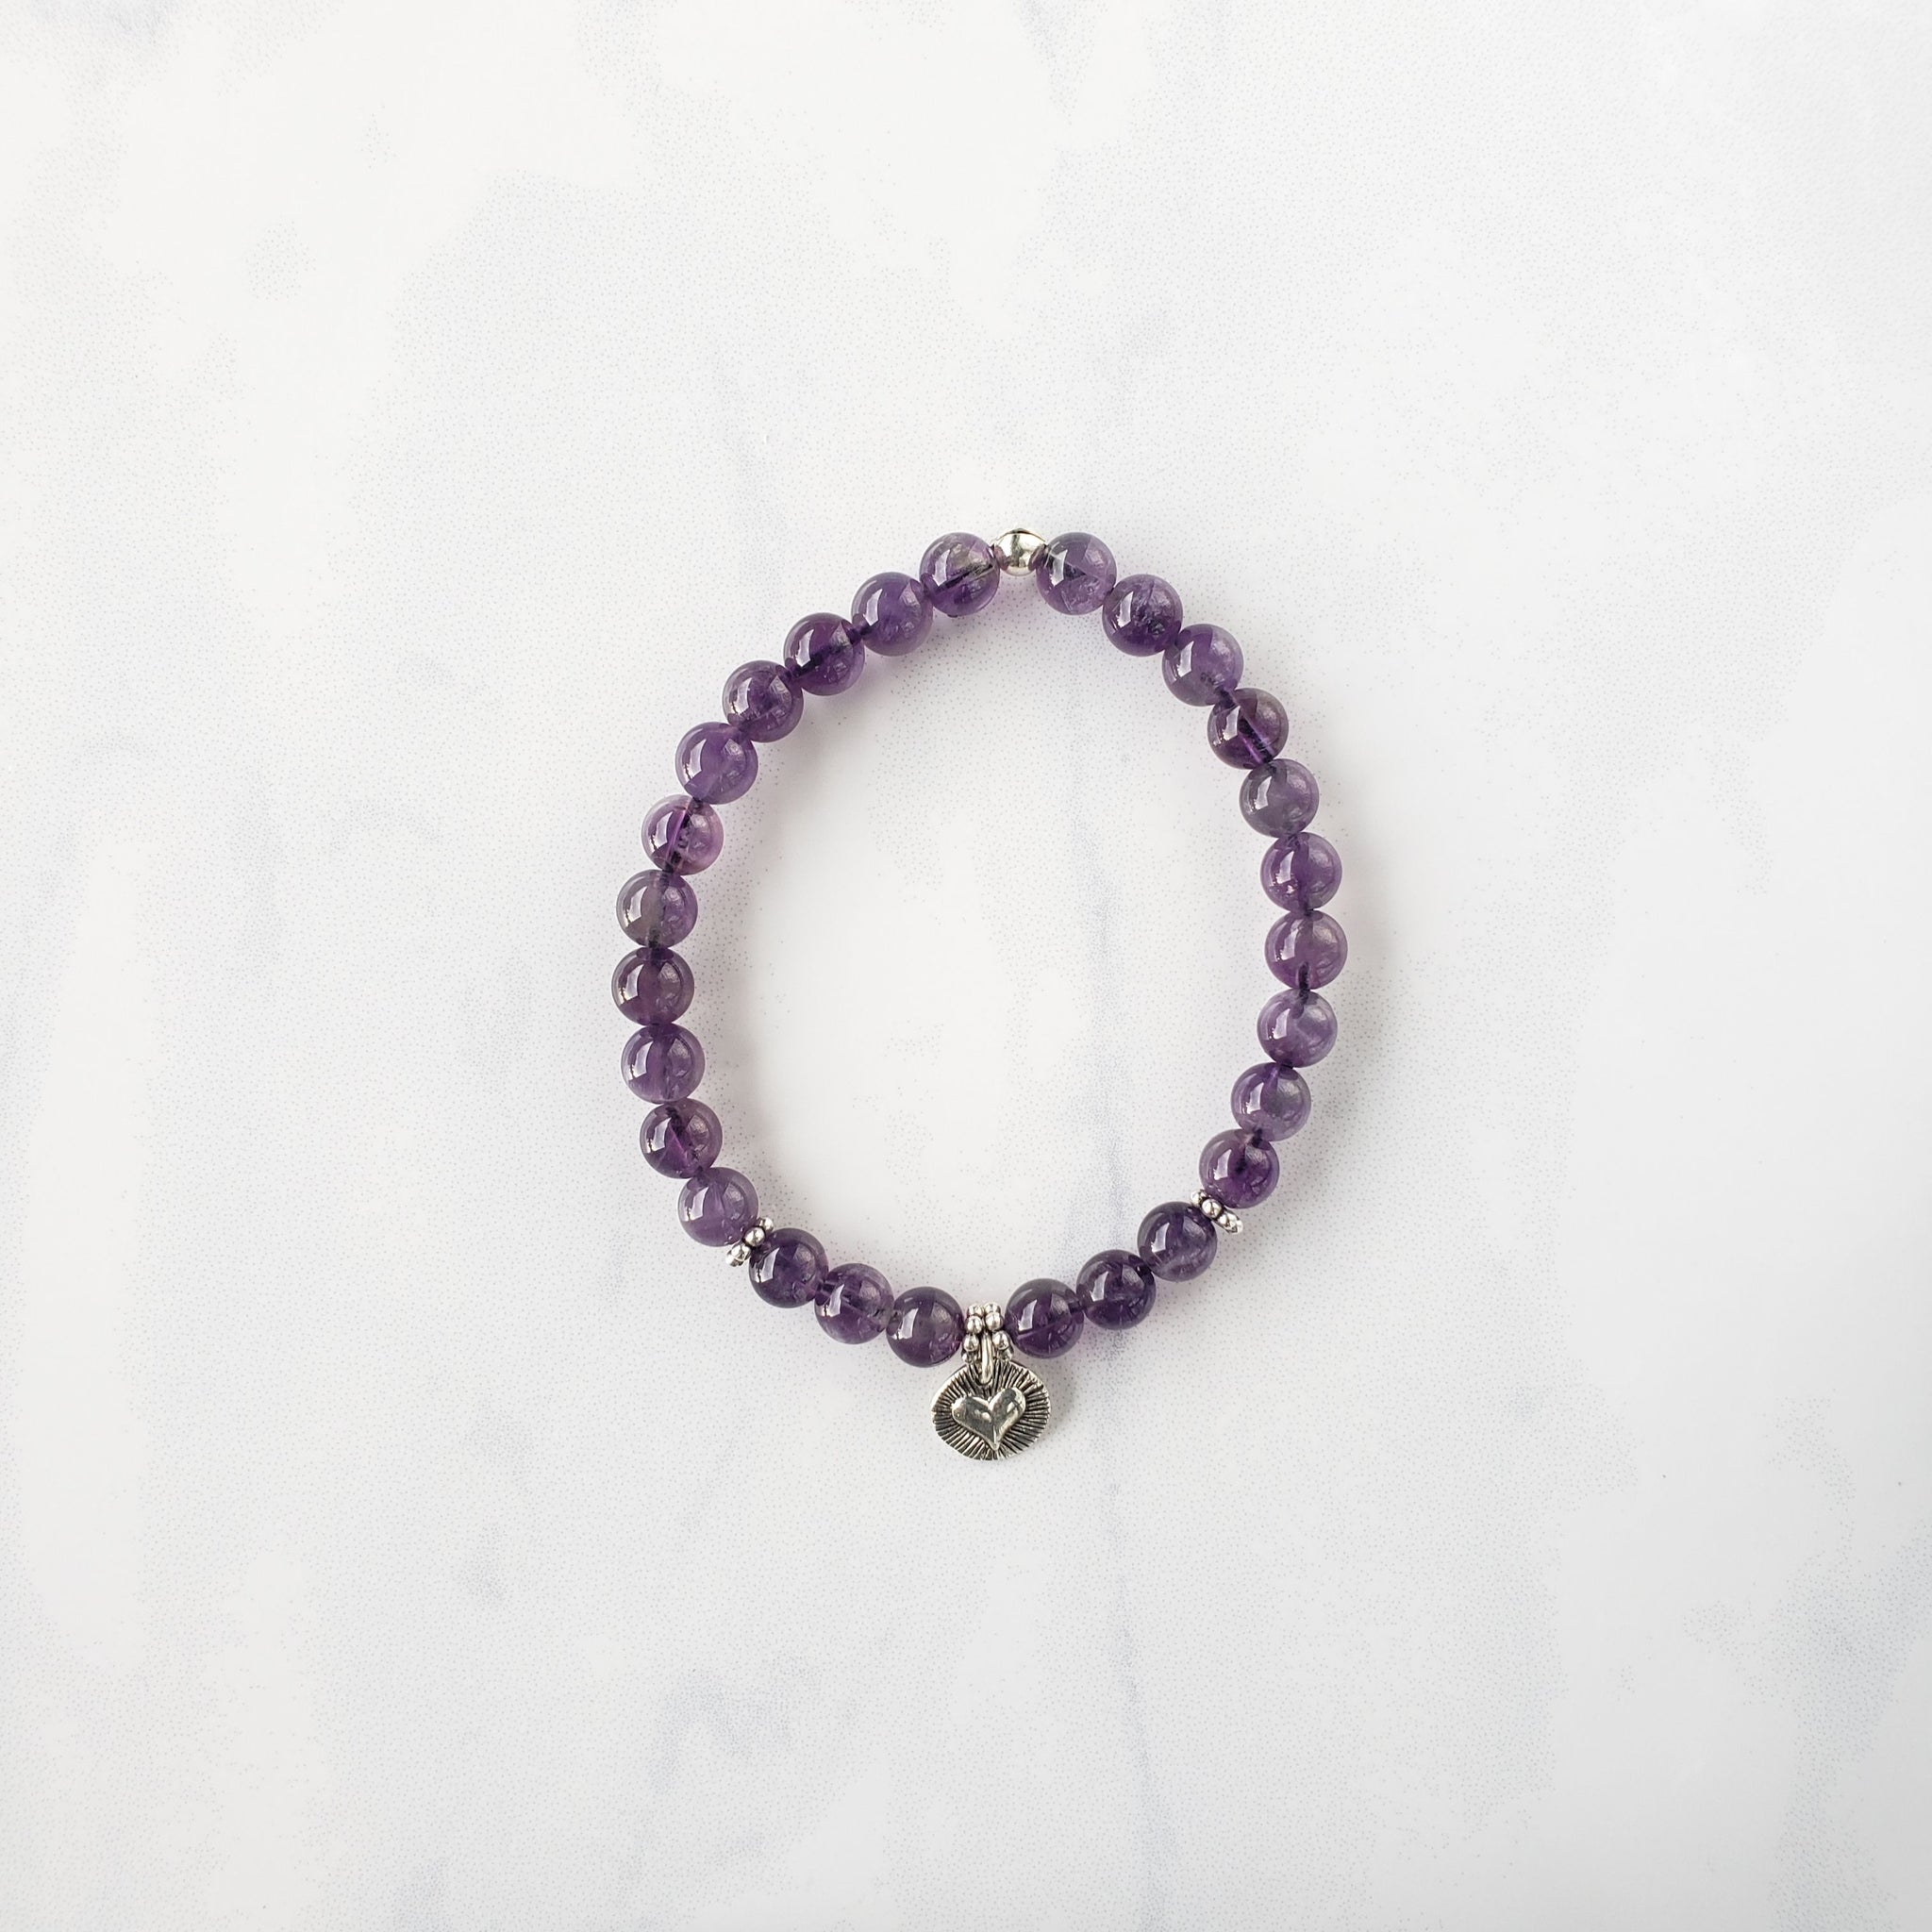 Amethyst+sterling silver heart bracelet - Sati Gems Hawaii Healing Crystal Gemstone Jewelry